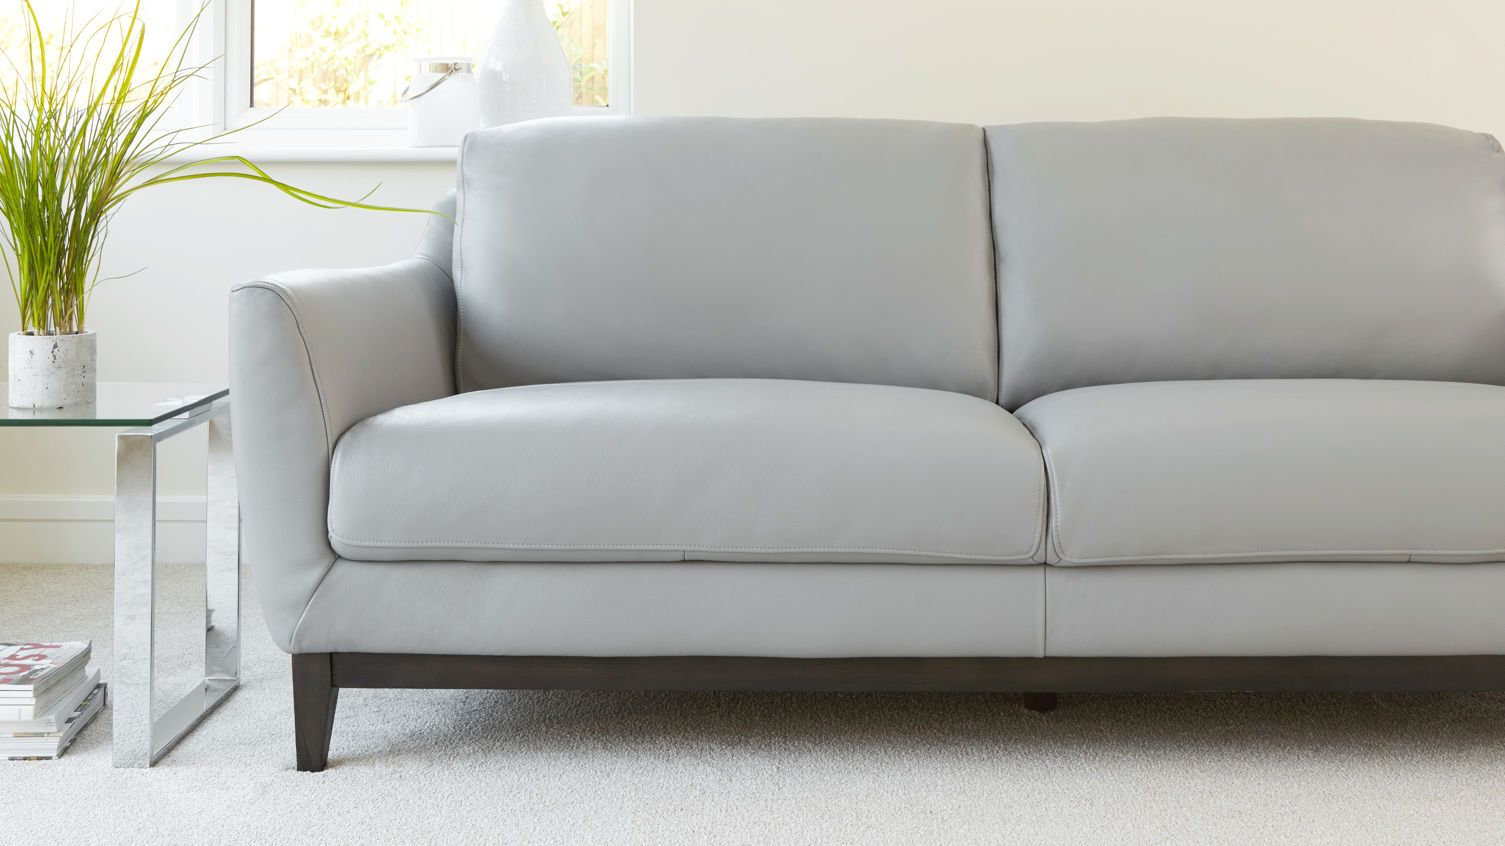 Seater Leather Sofa From Danetti